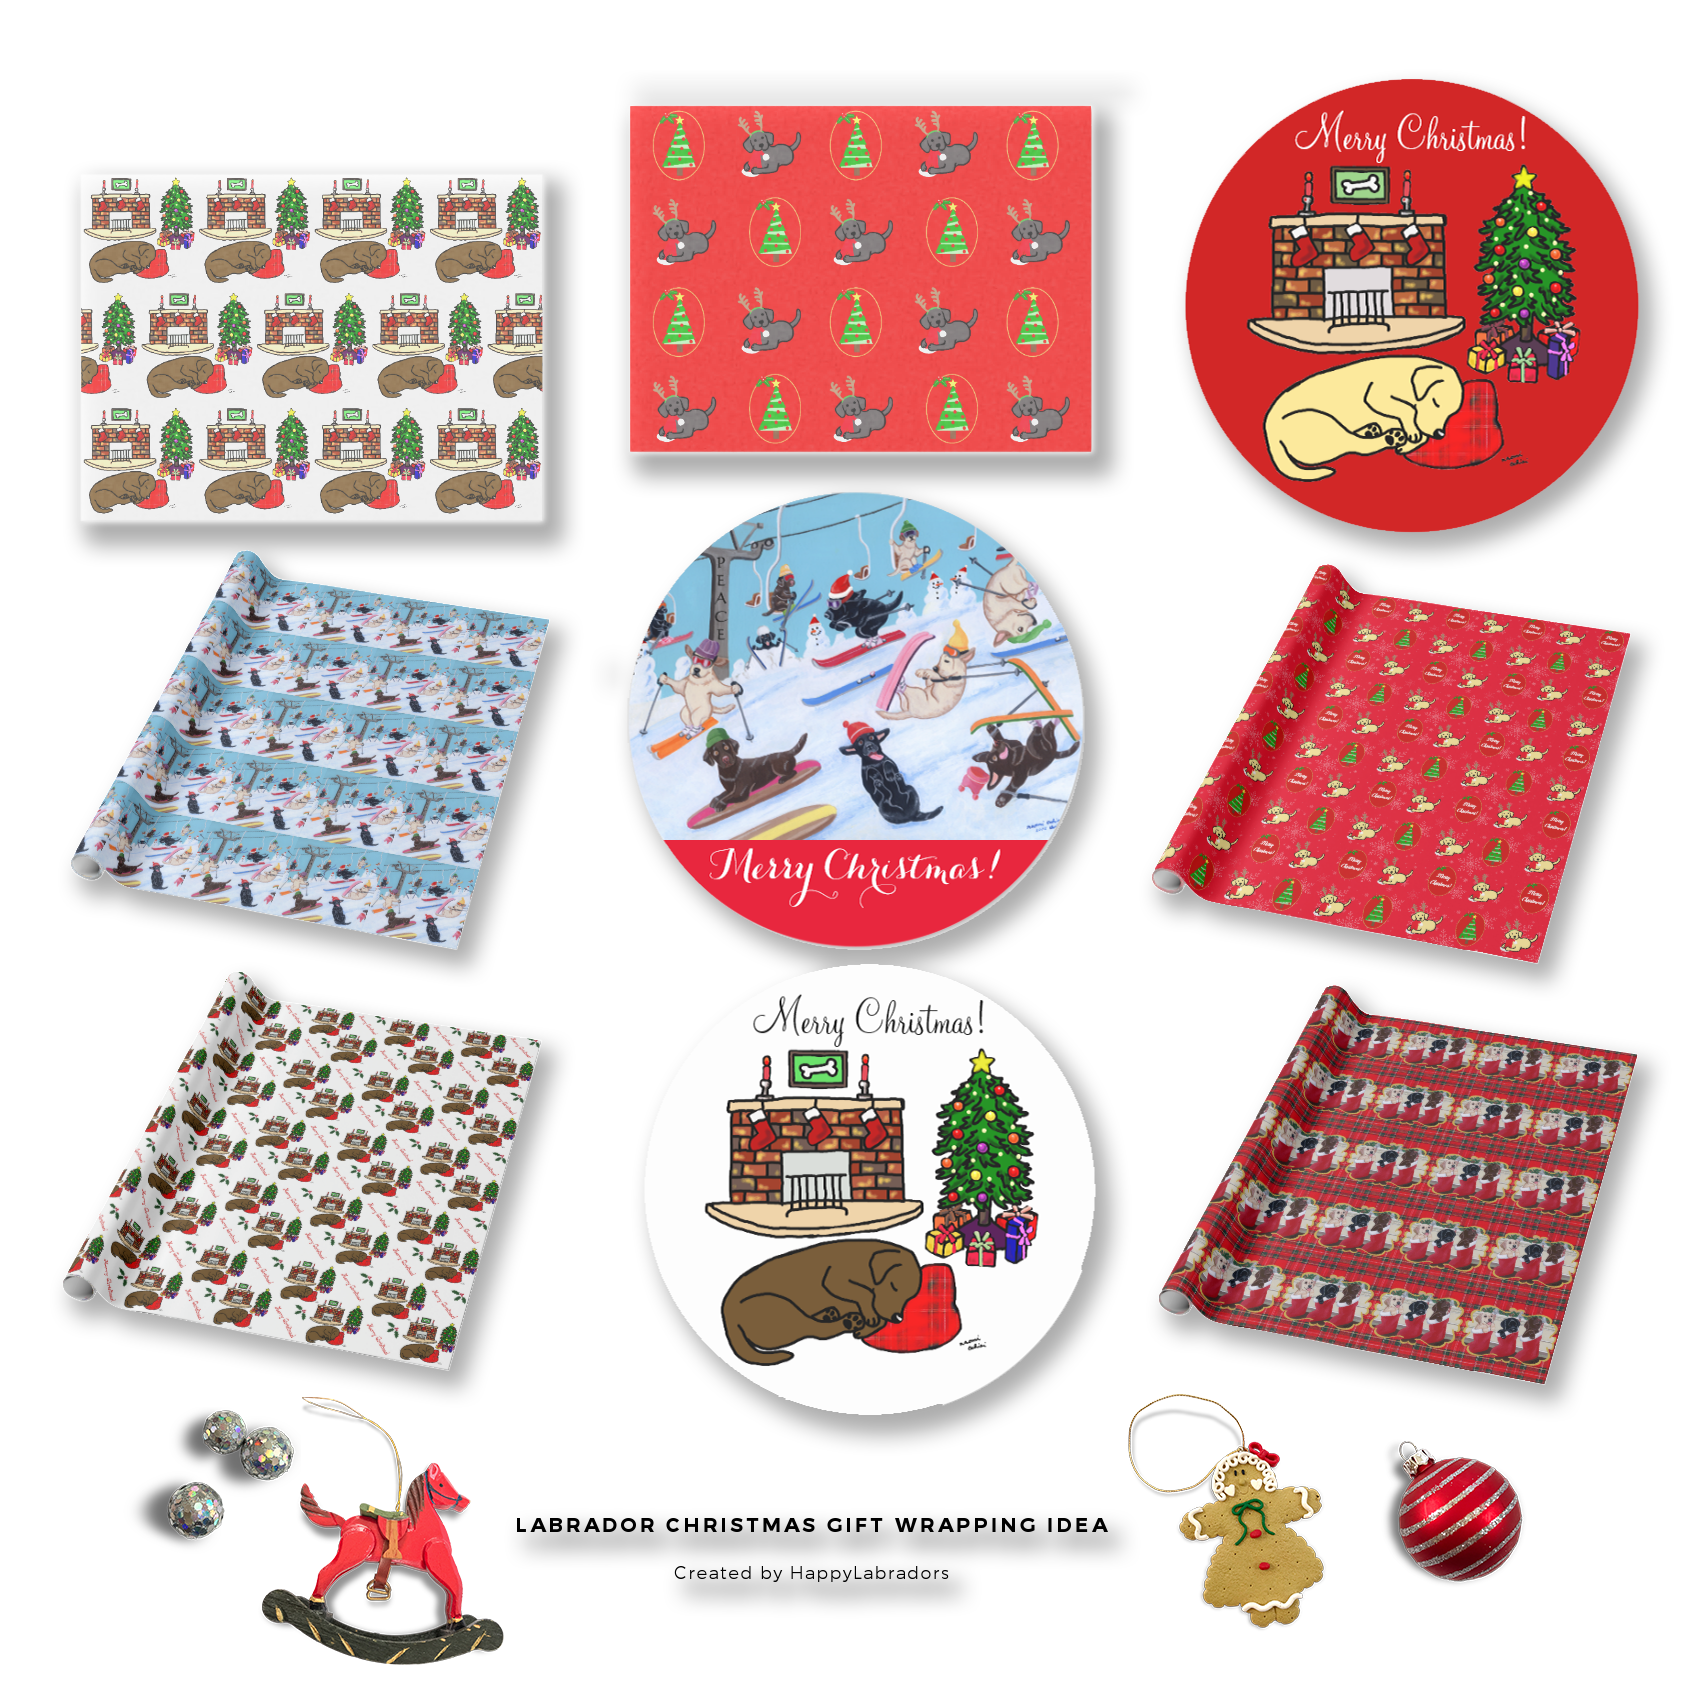 Labrador Retriever Christmas Gift Wrapping Ideas by HappyLabradors @zazzle